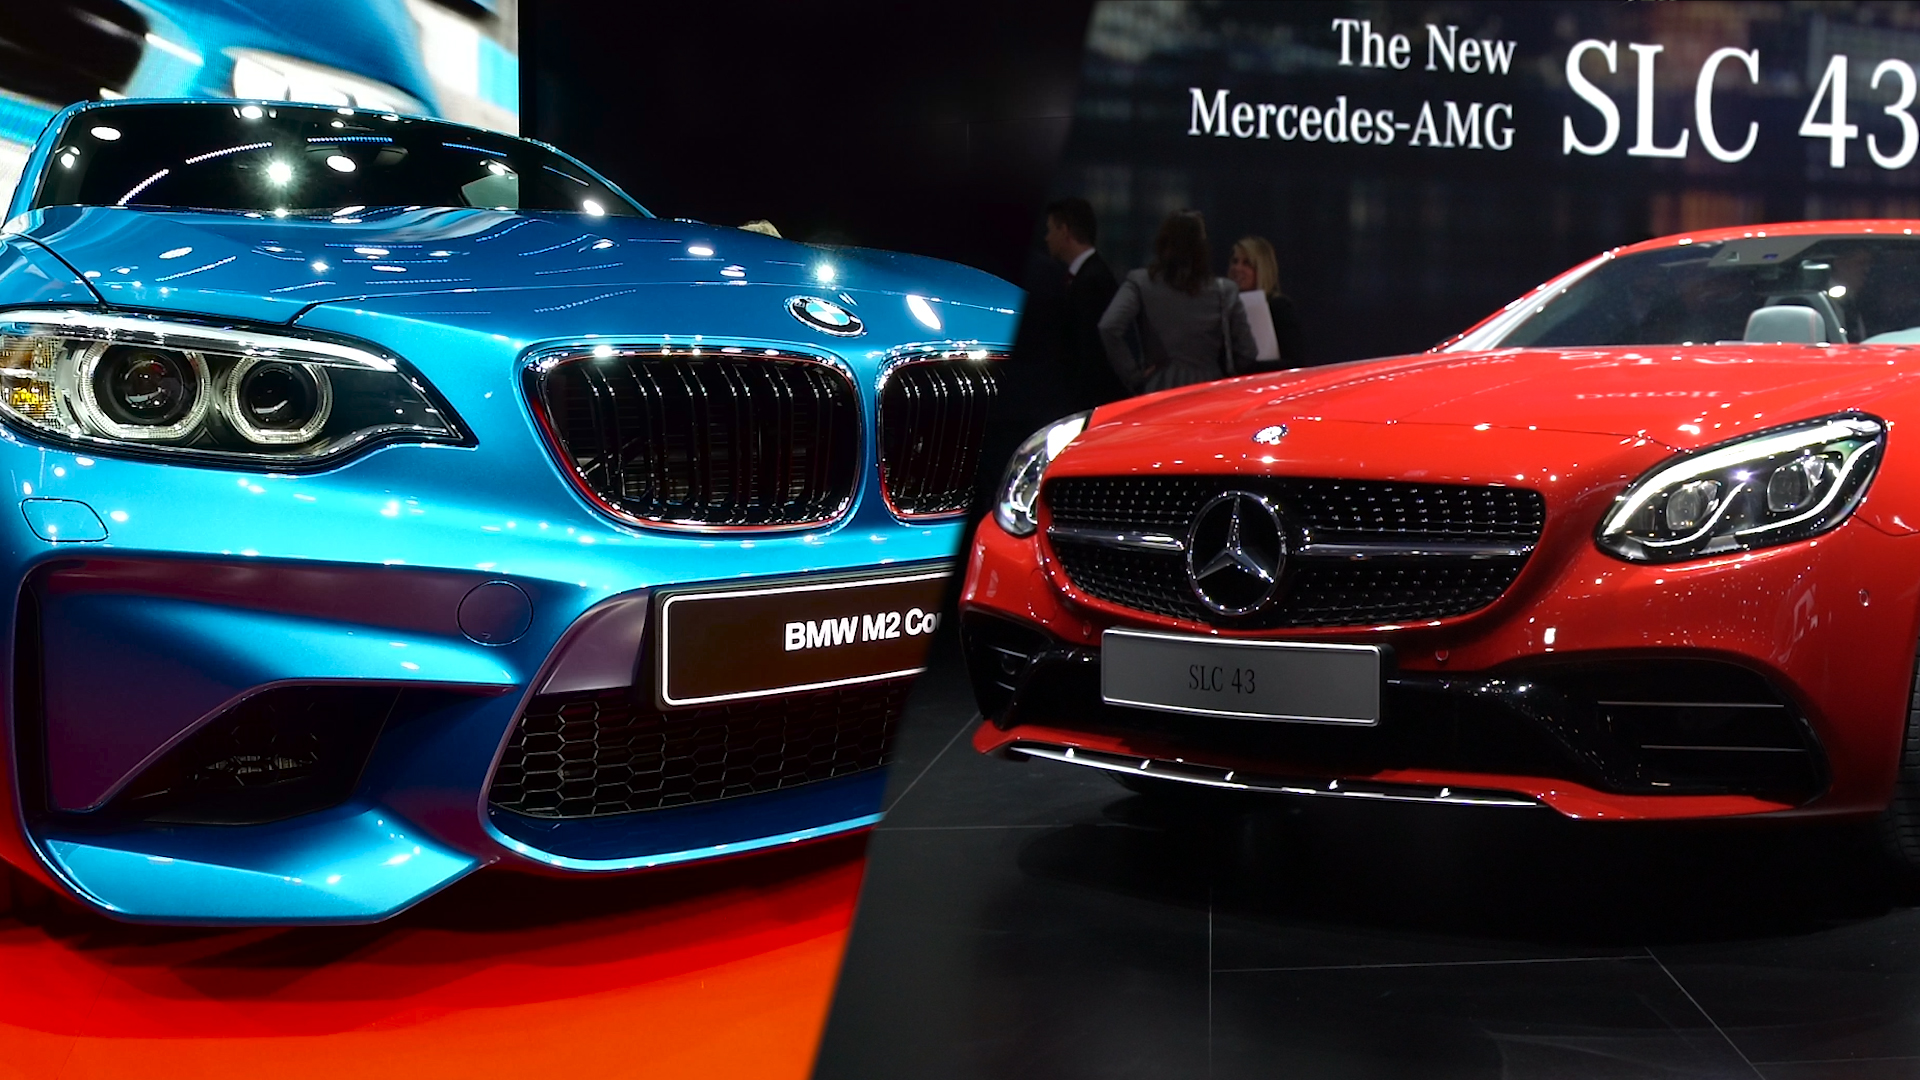 Video: Mercedes-AMG SLC 43 or BMW M2?